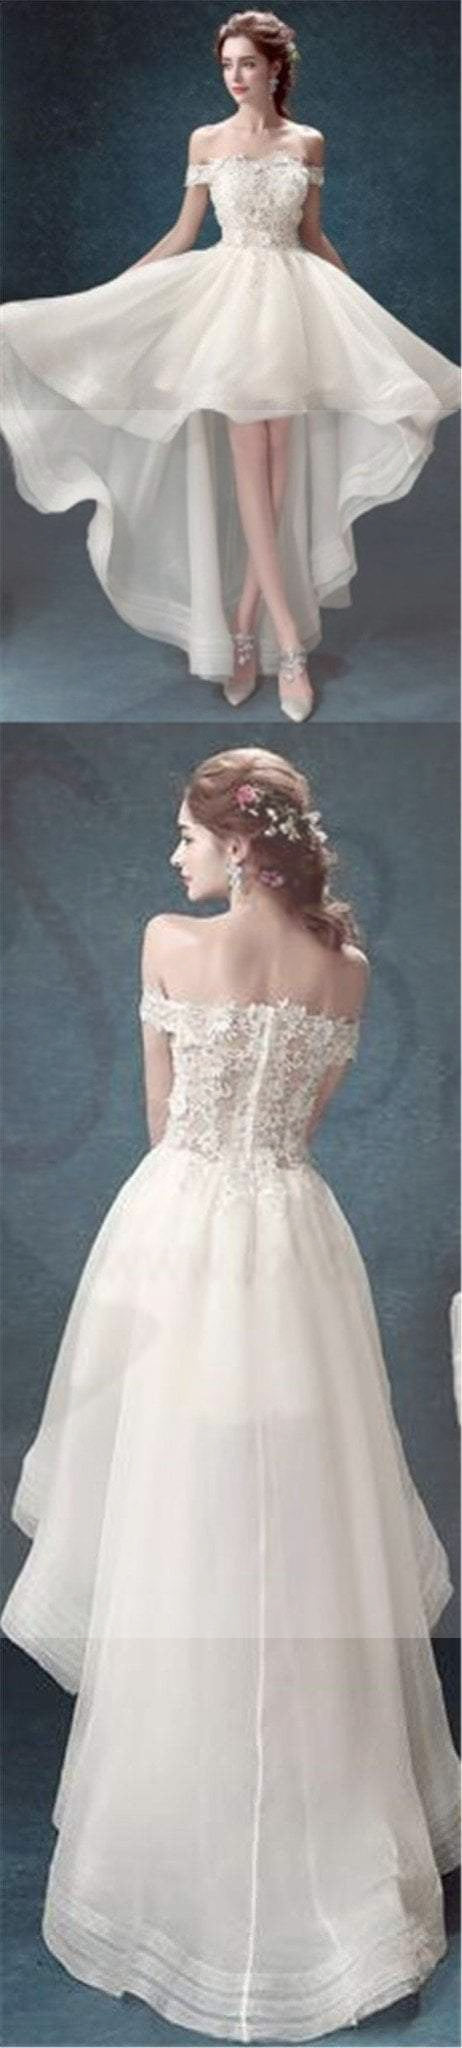 High Low Prom Dresses,Off Shoulder Prom Dresses, White Organza Prom ...